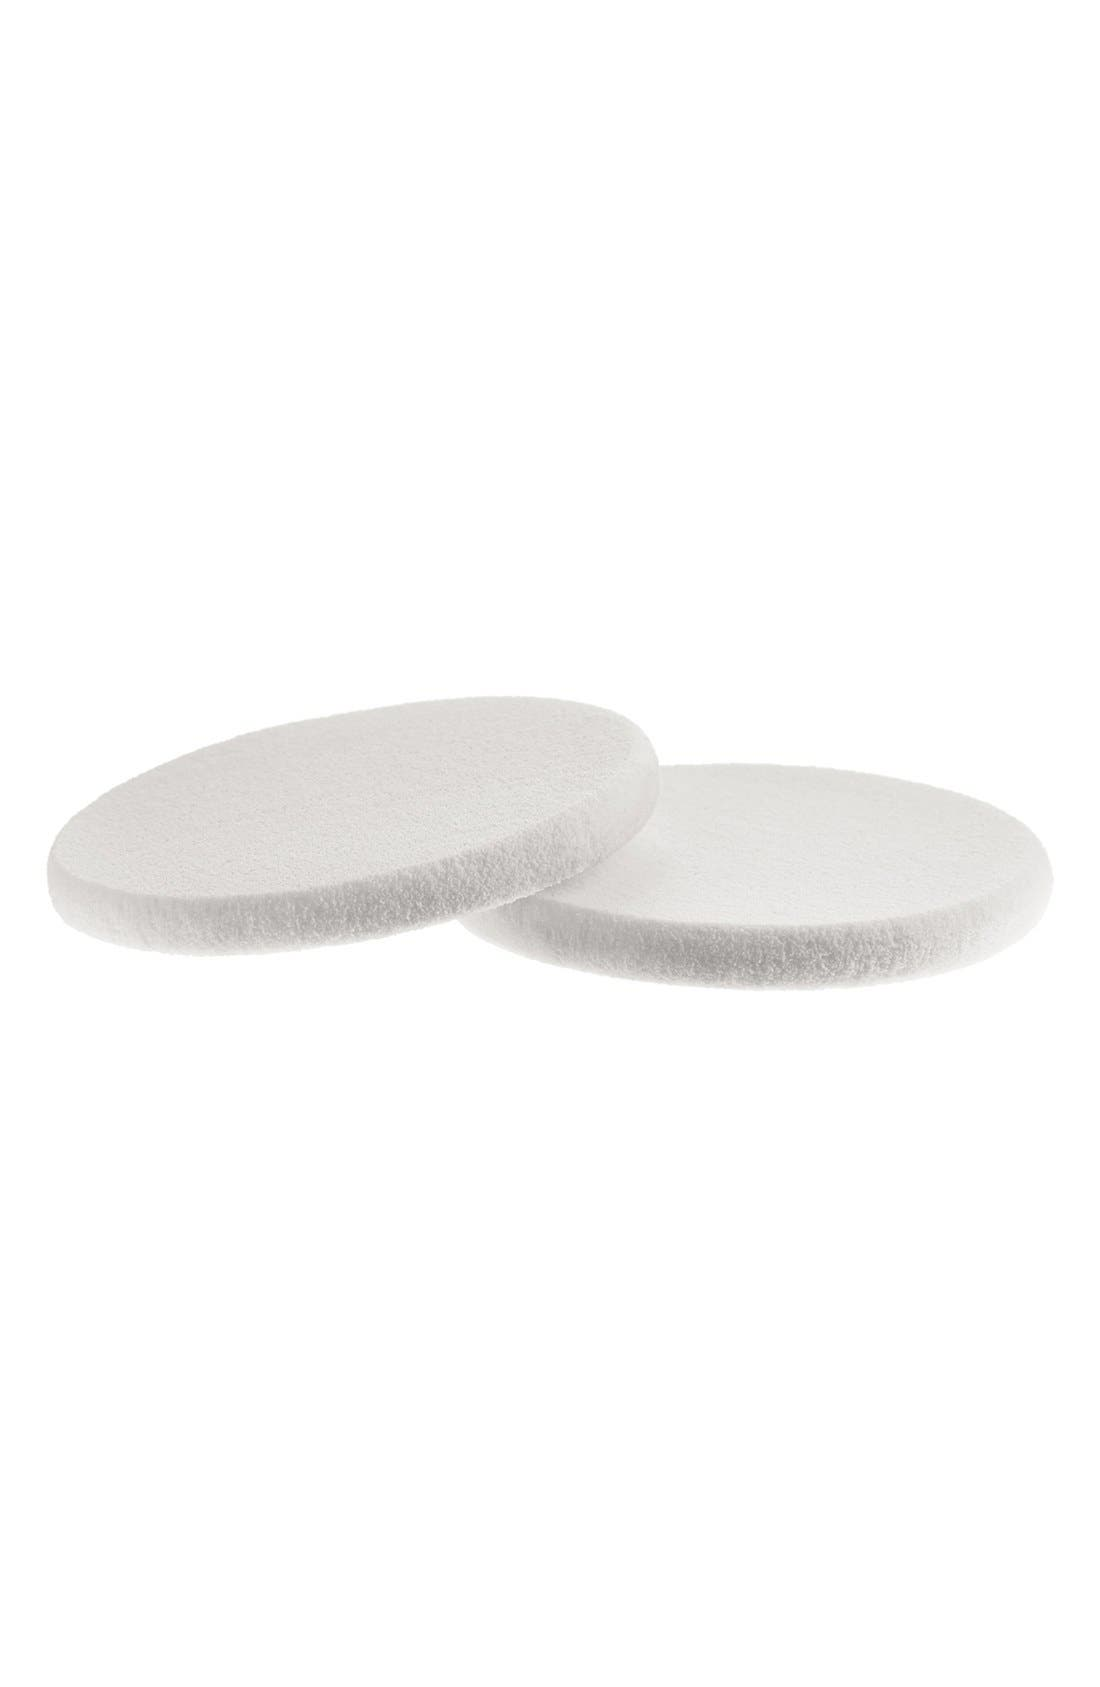 MAC Multi-Formula Foundation Sponges